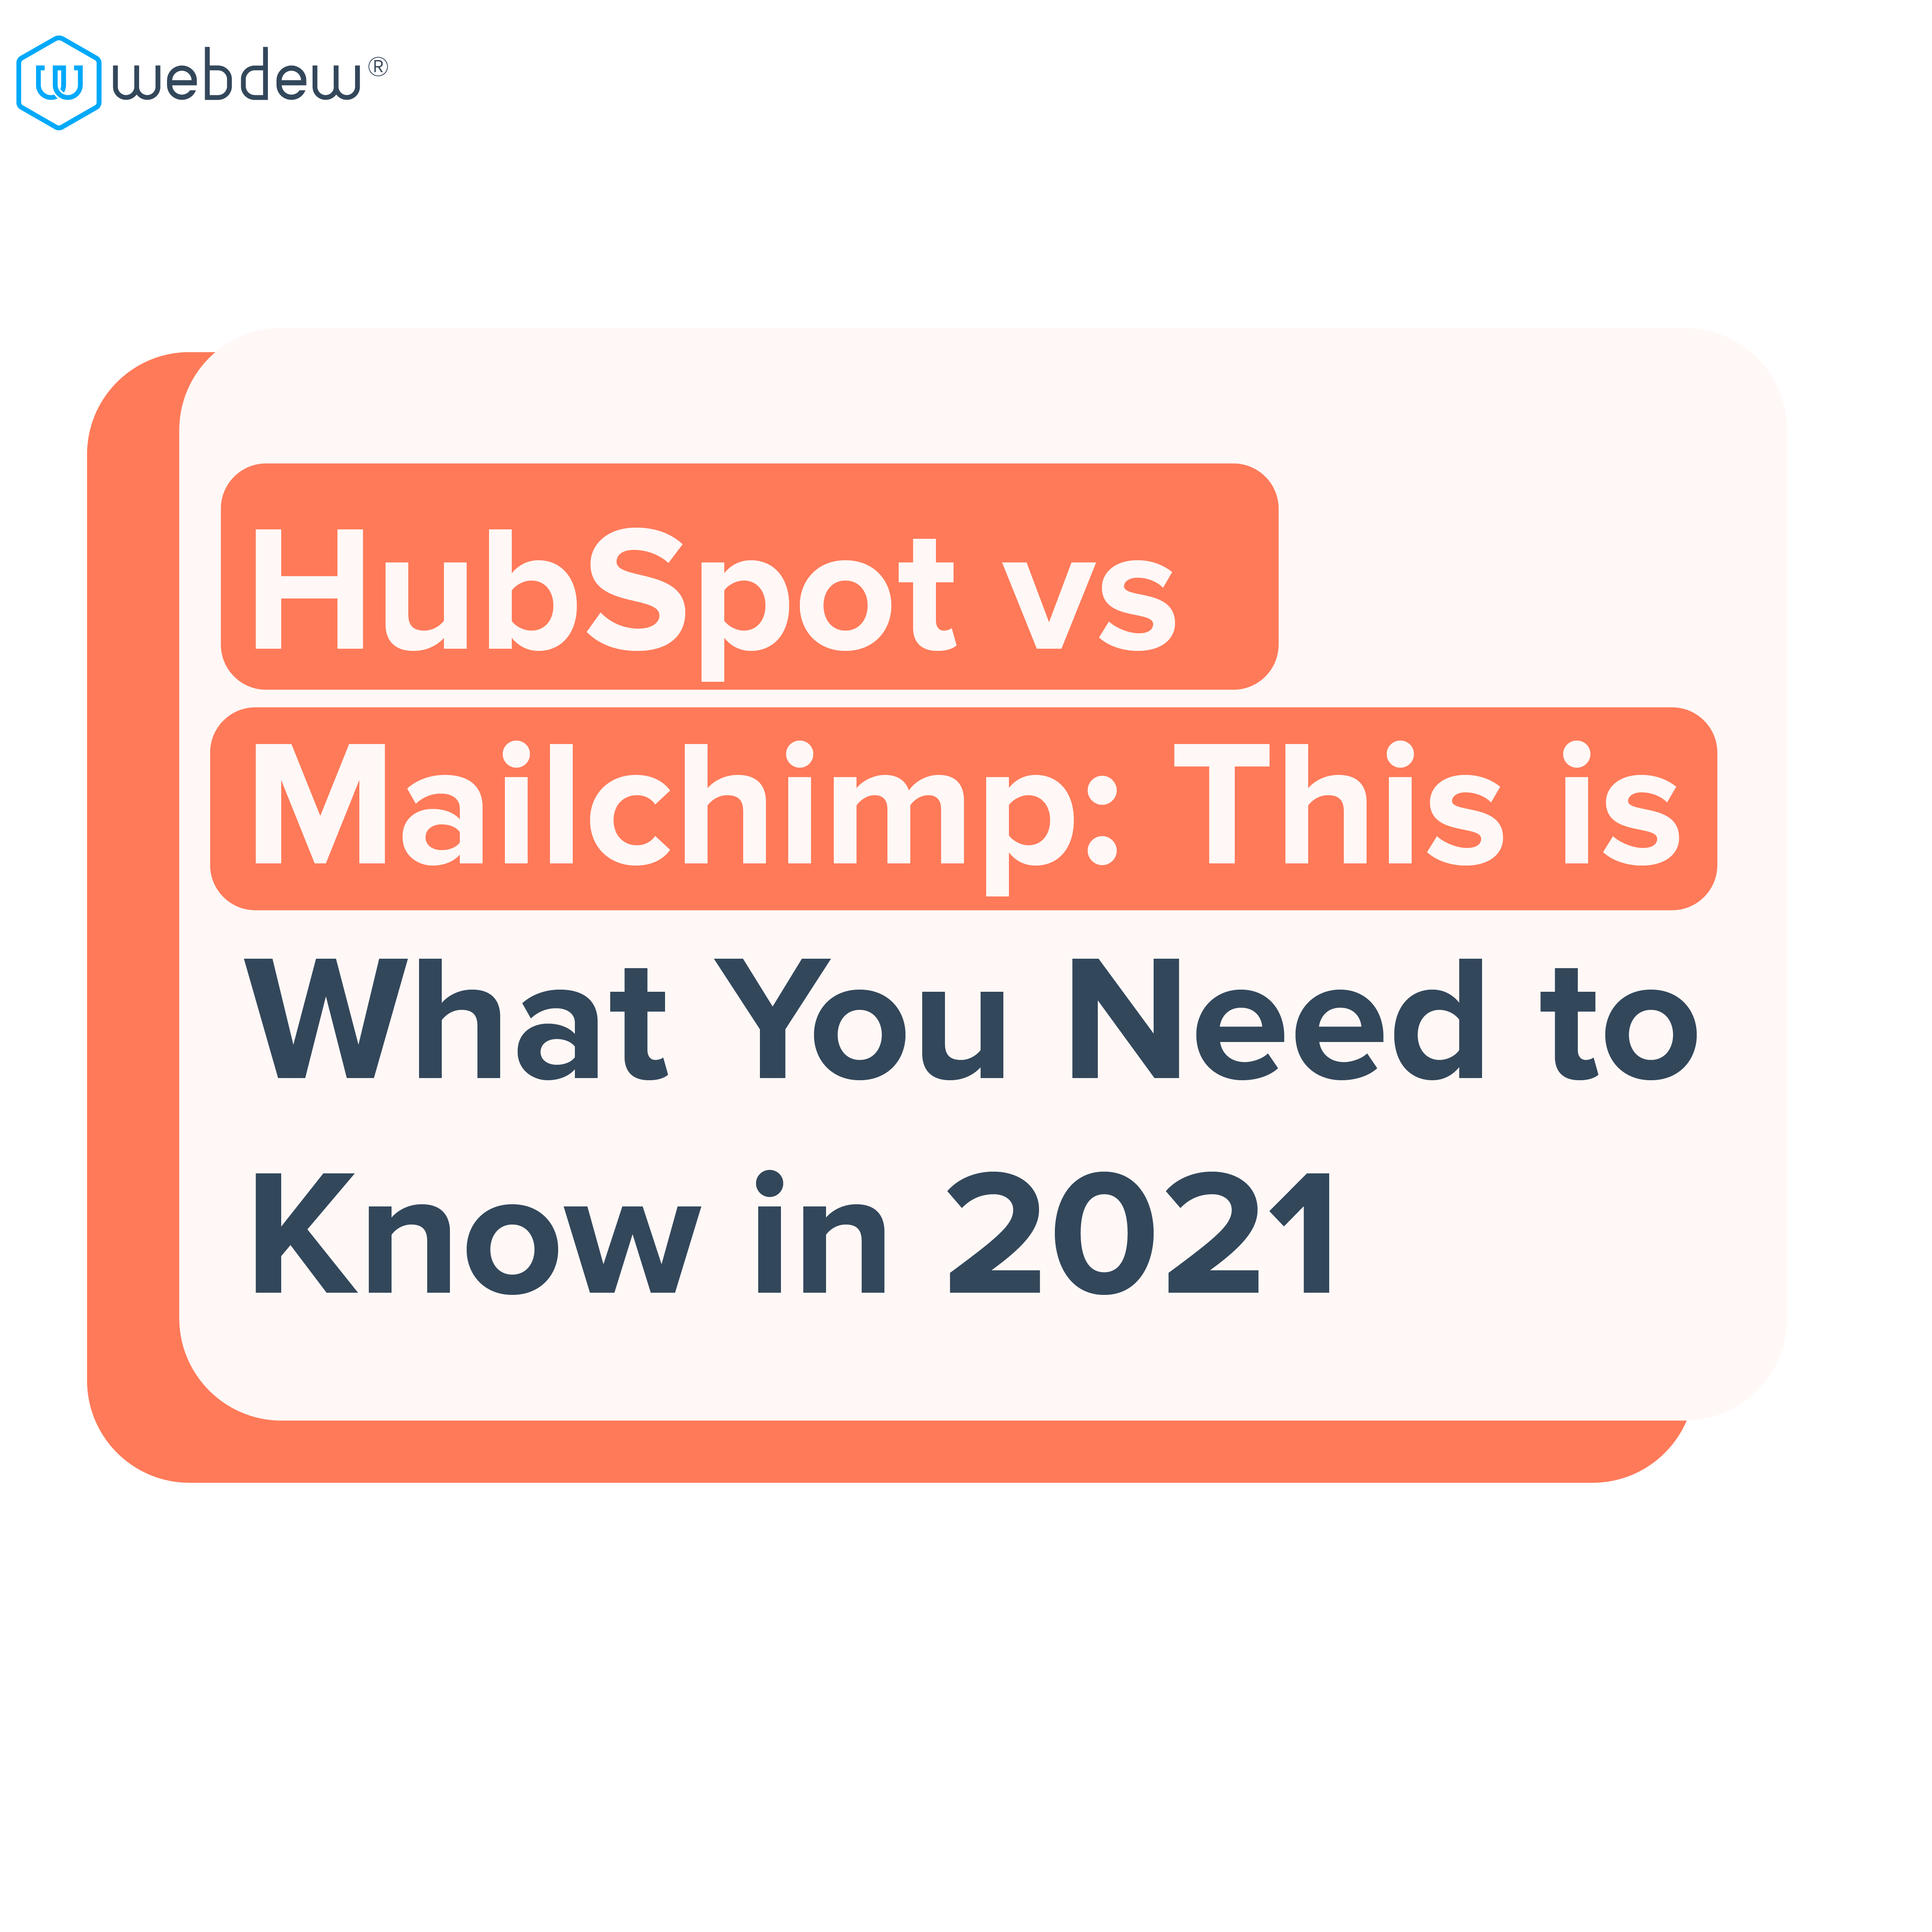 hubspot vs mailchimp this is what you need to know in 2021-01